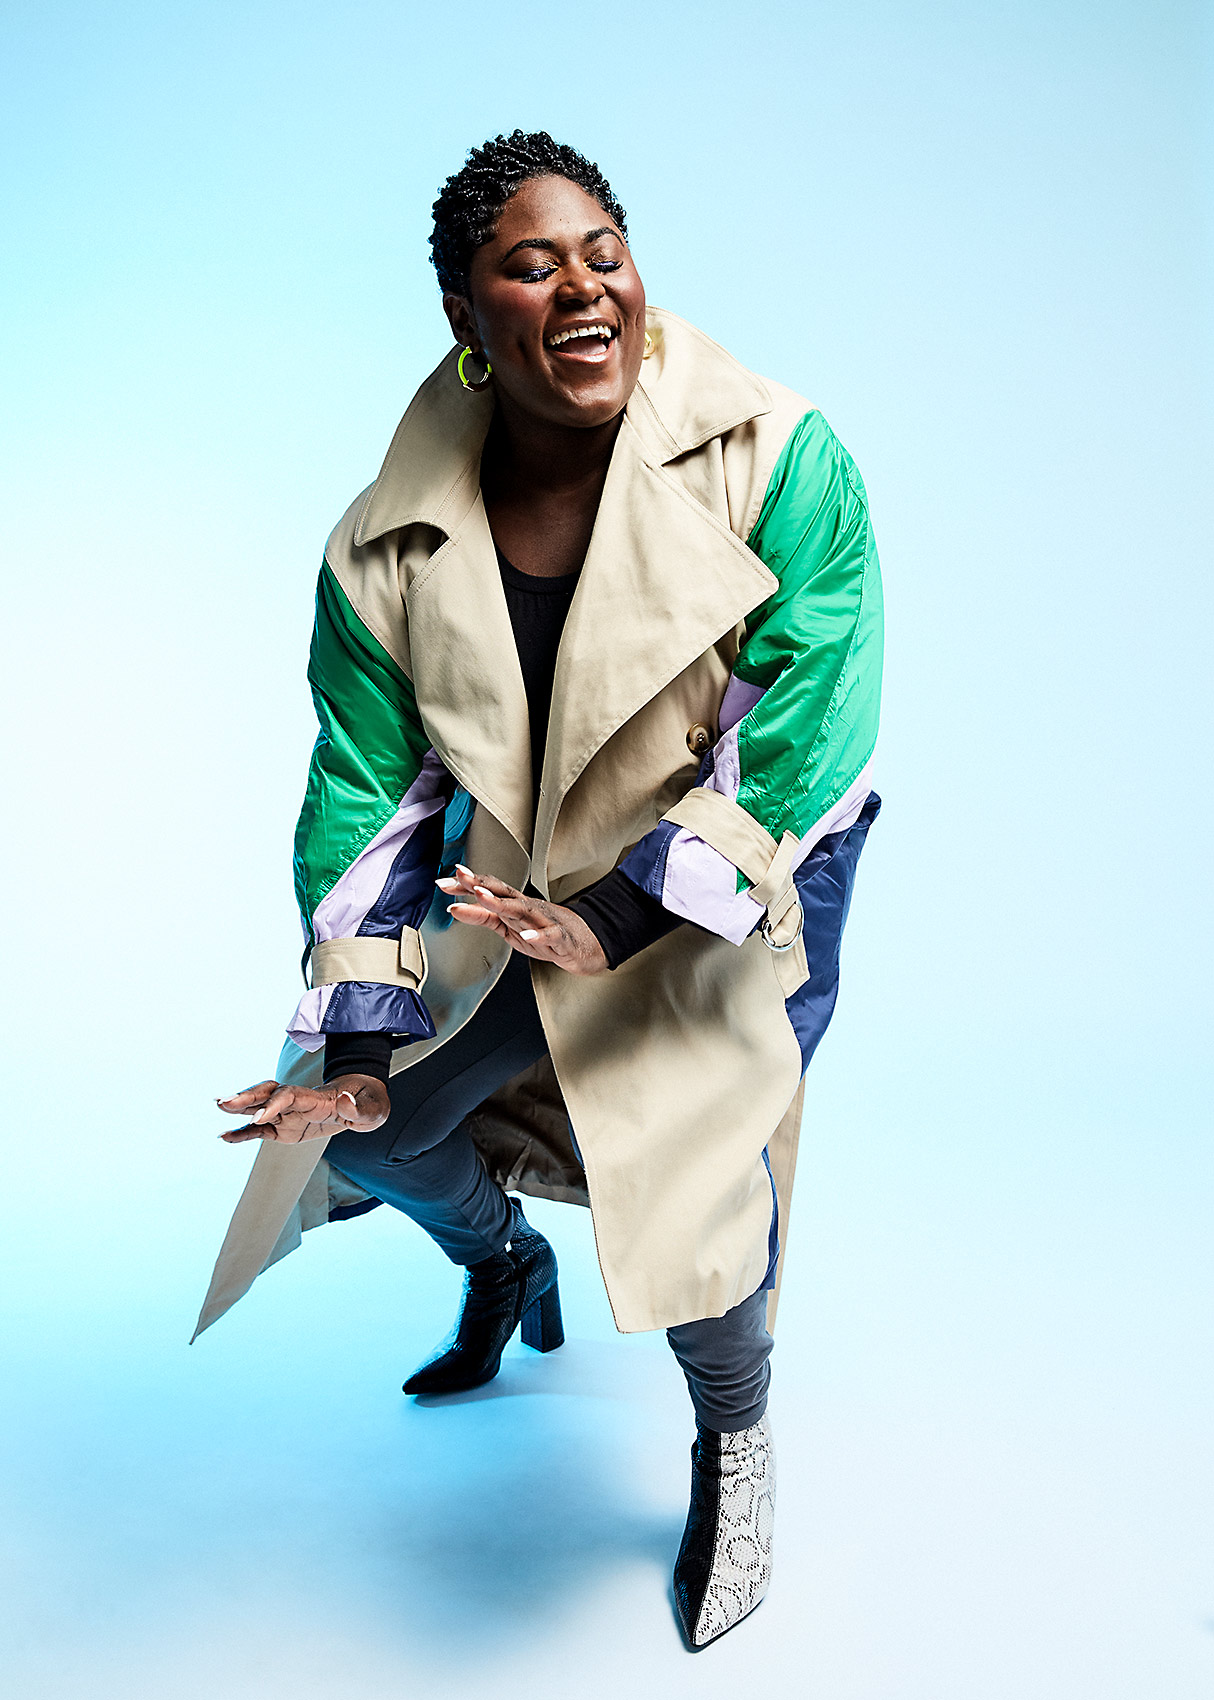 portrait of actress Danielle Brooks dancing